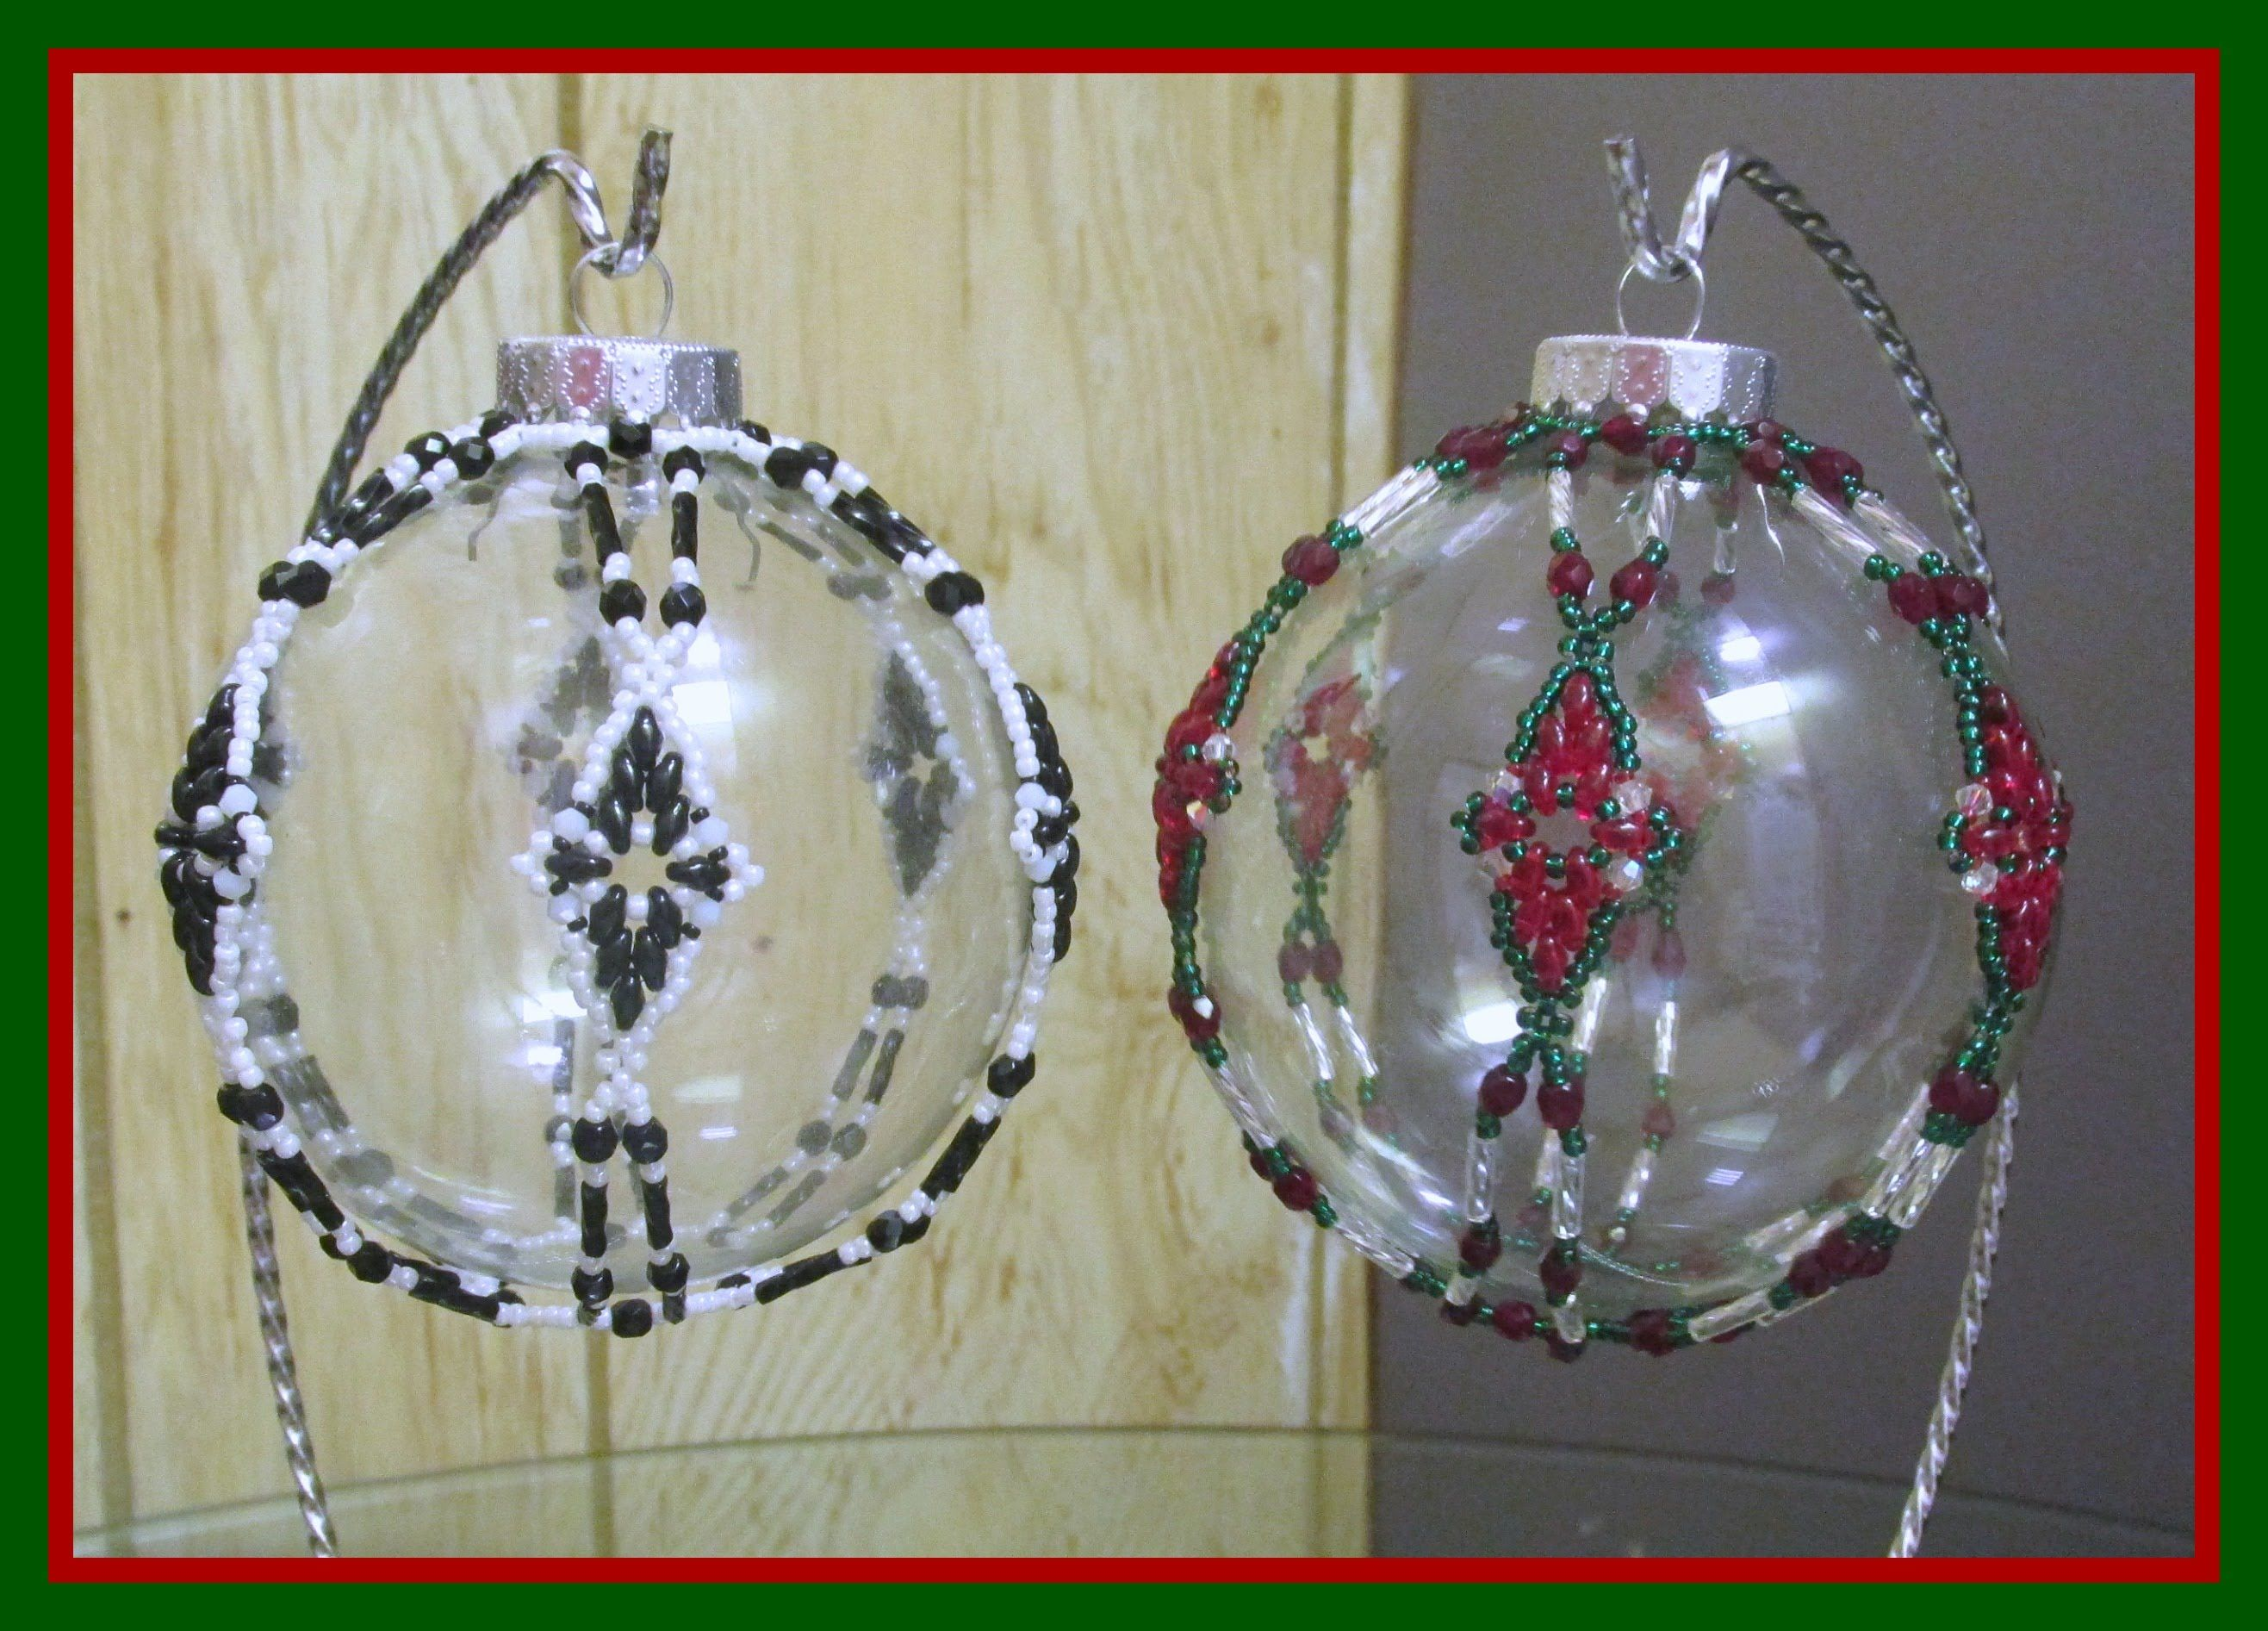 Kelly From Off The Beaded Path In Forest City North Carolina Shows You How Make A Great Ne Beaded Ornament Covers Beaded Christmas Ornaments Beaded Ornaments